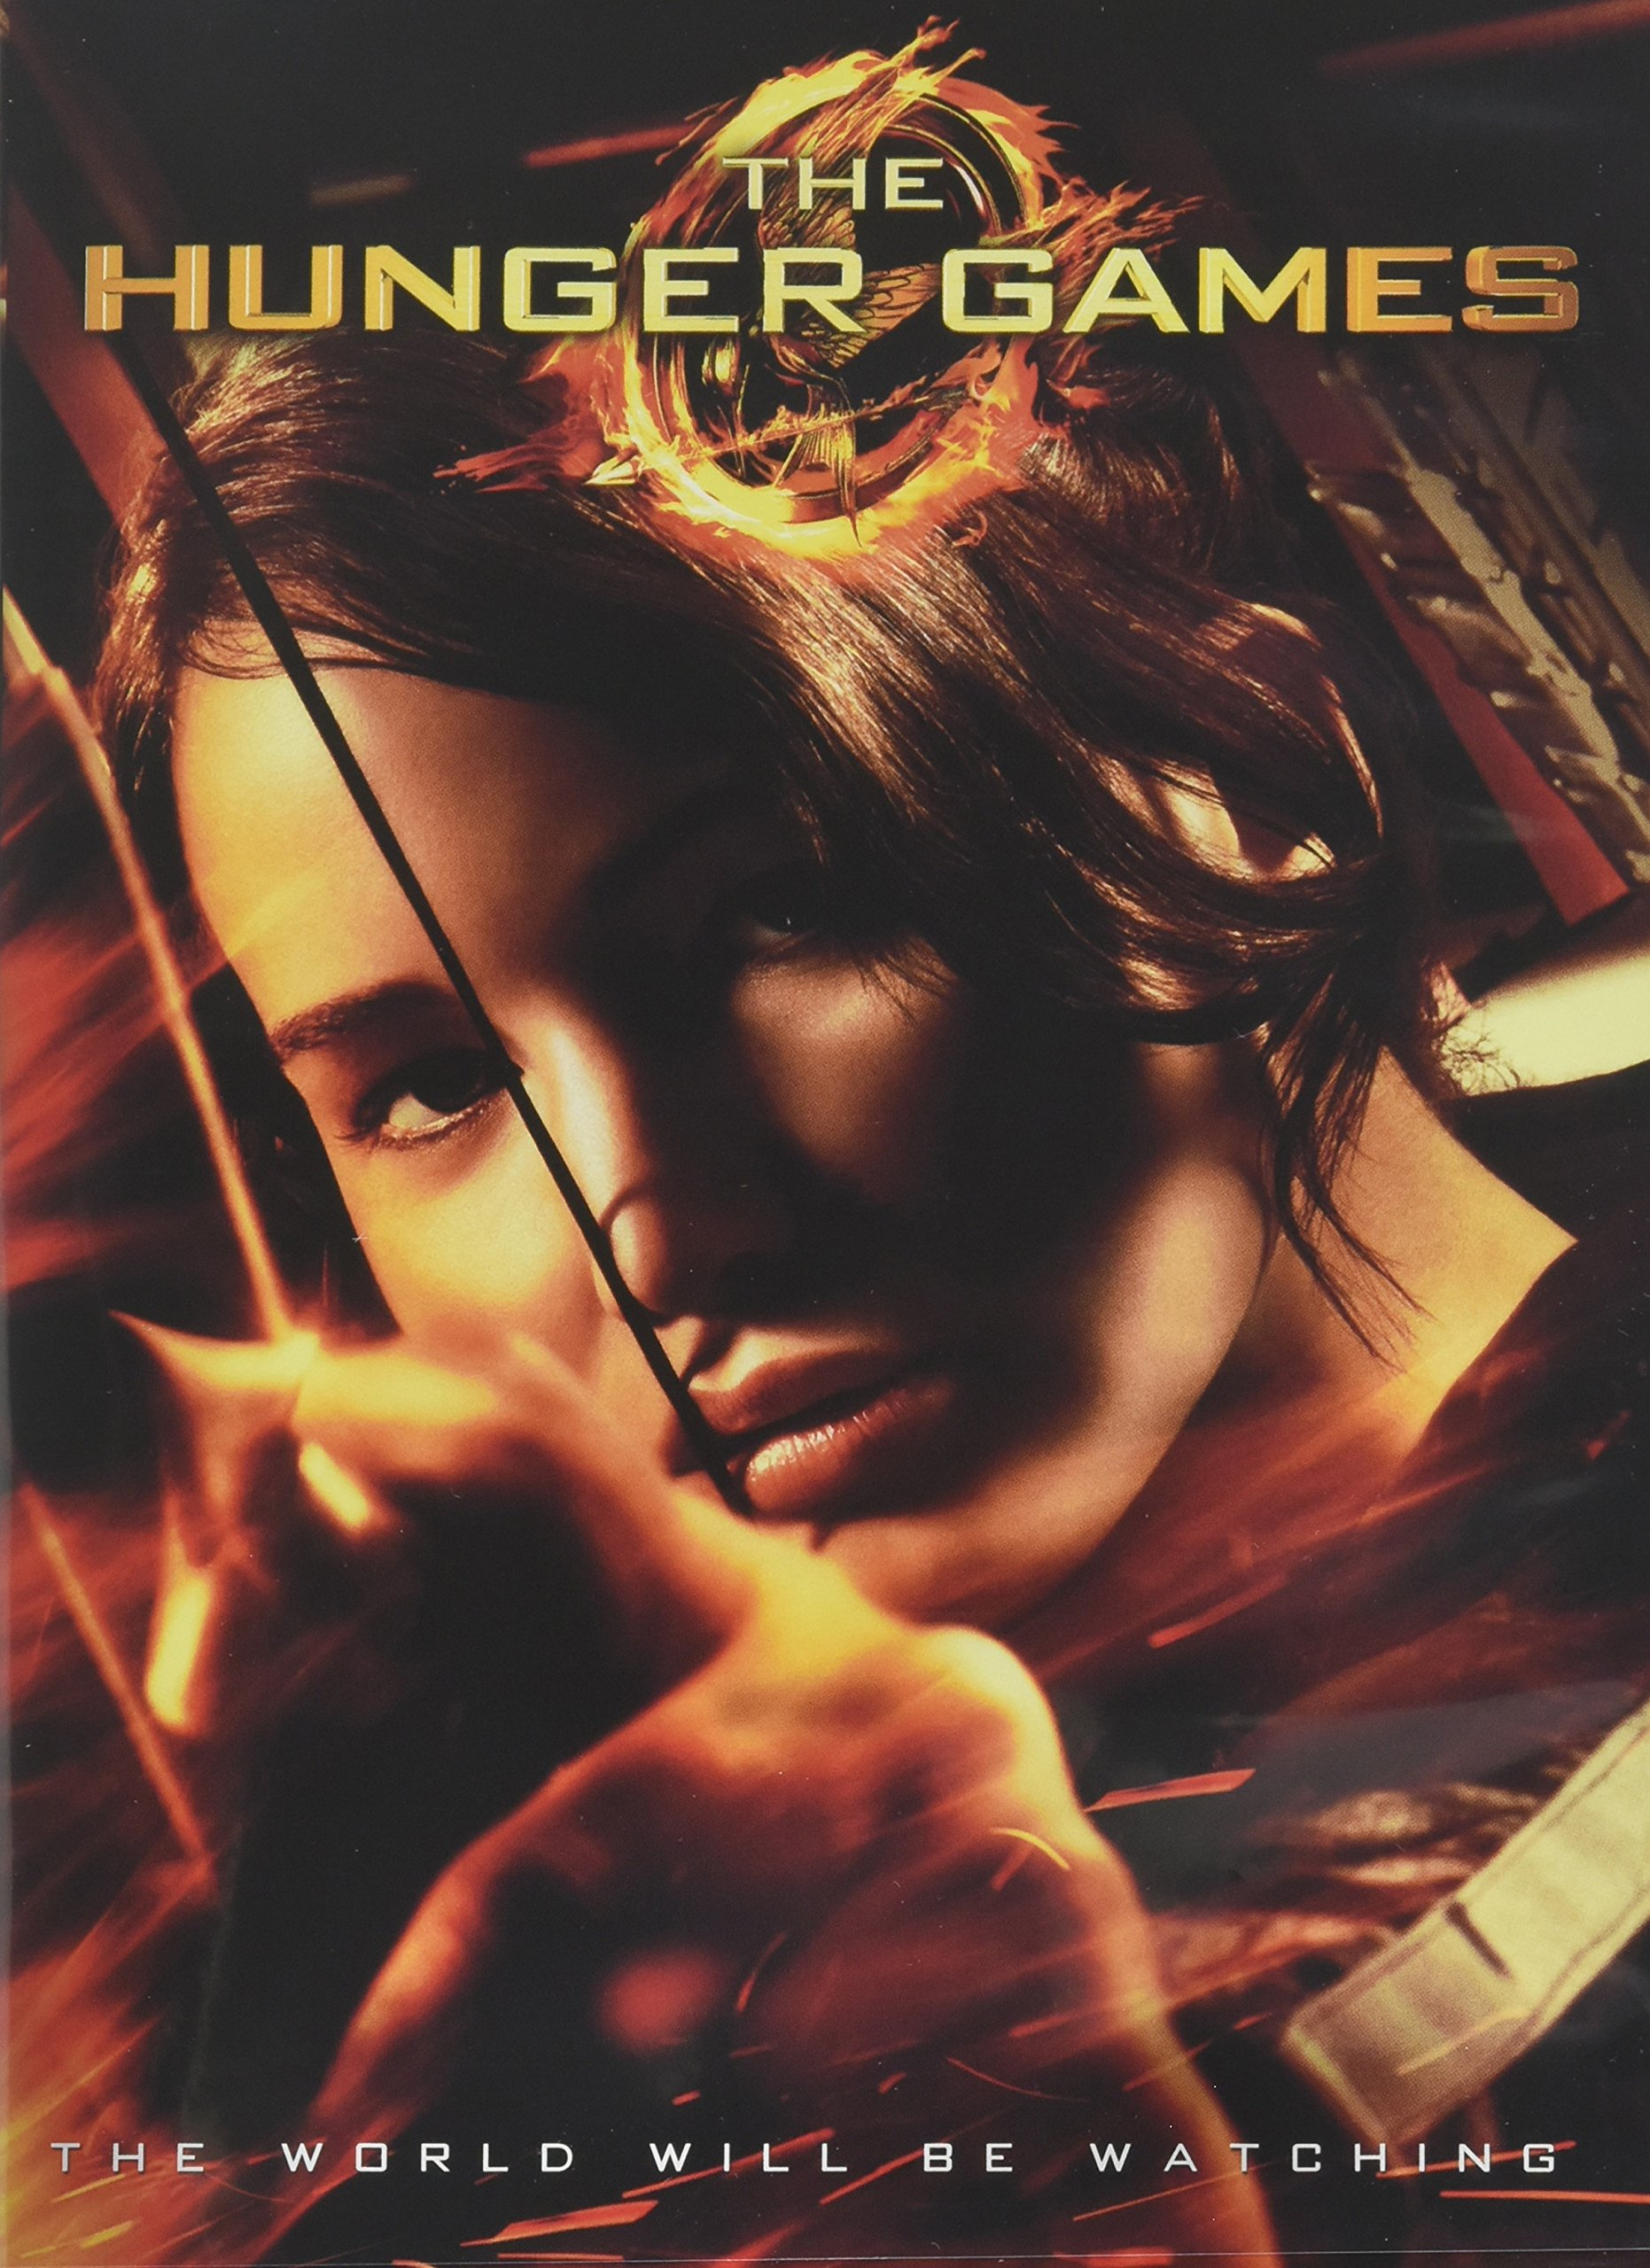 the hunger games 2012 full movie free download hd